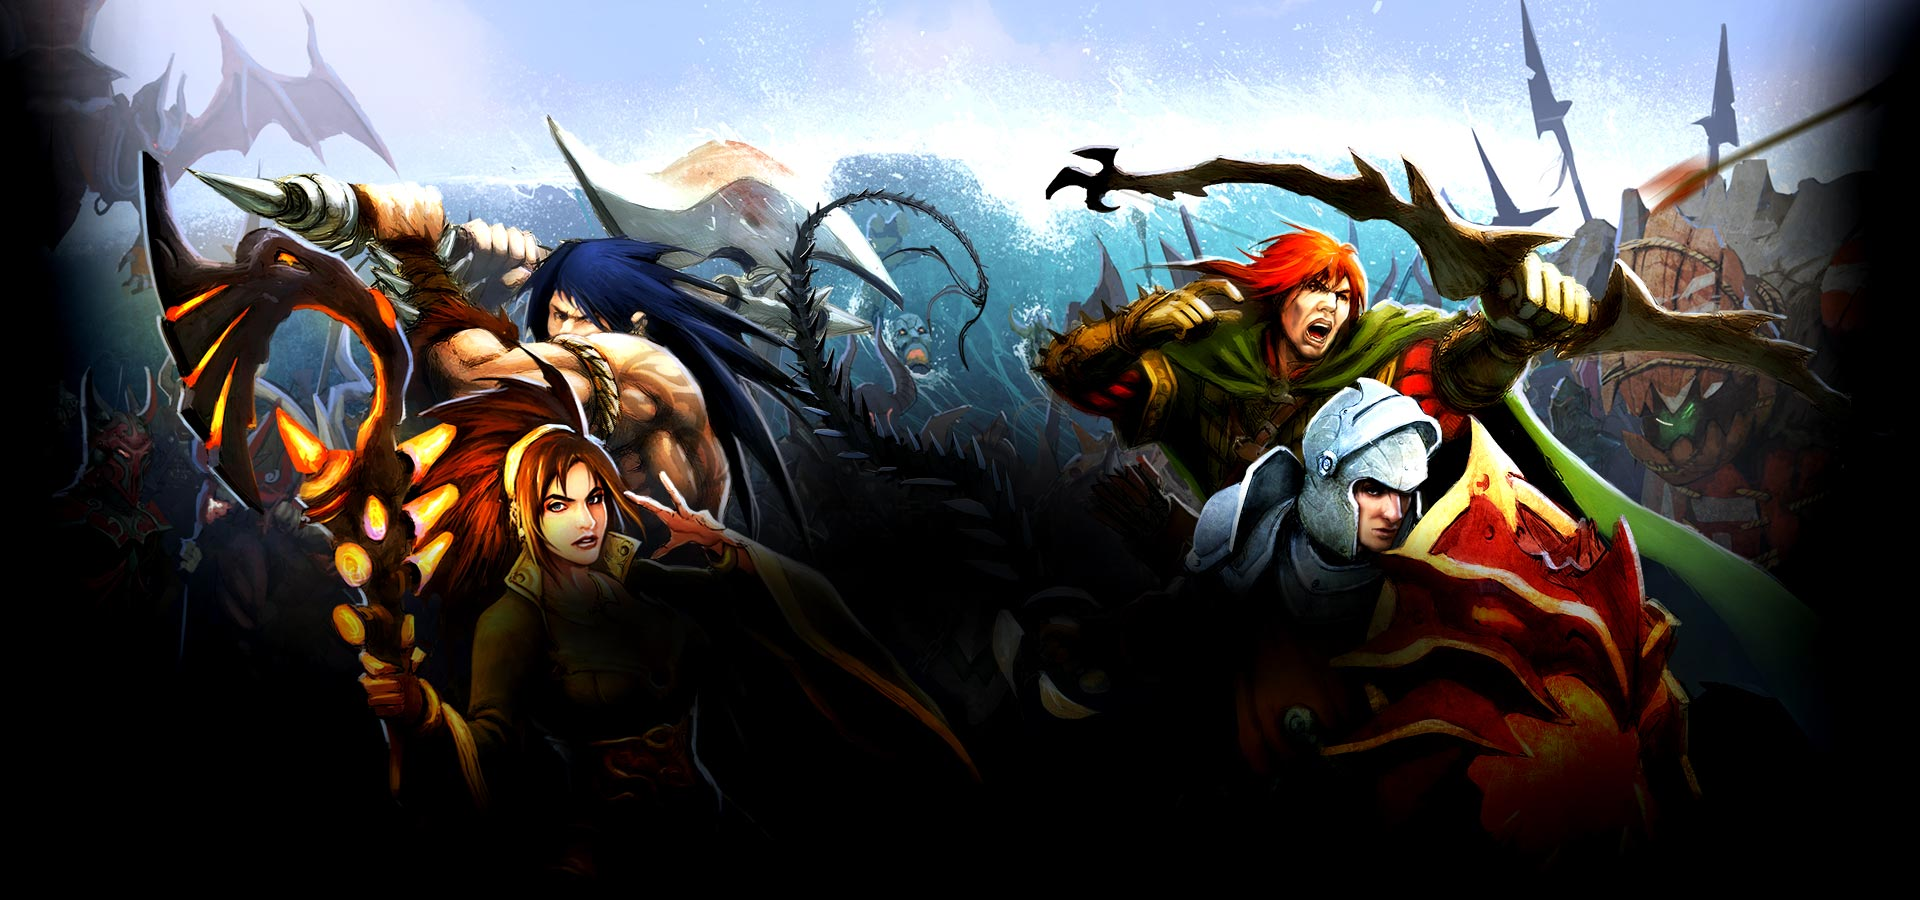 Best Iphone Wallpaper Website Runescape New Game Hd Wallpapers All Hd Wallpapers